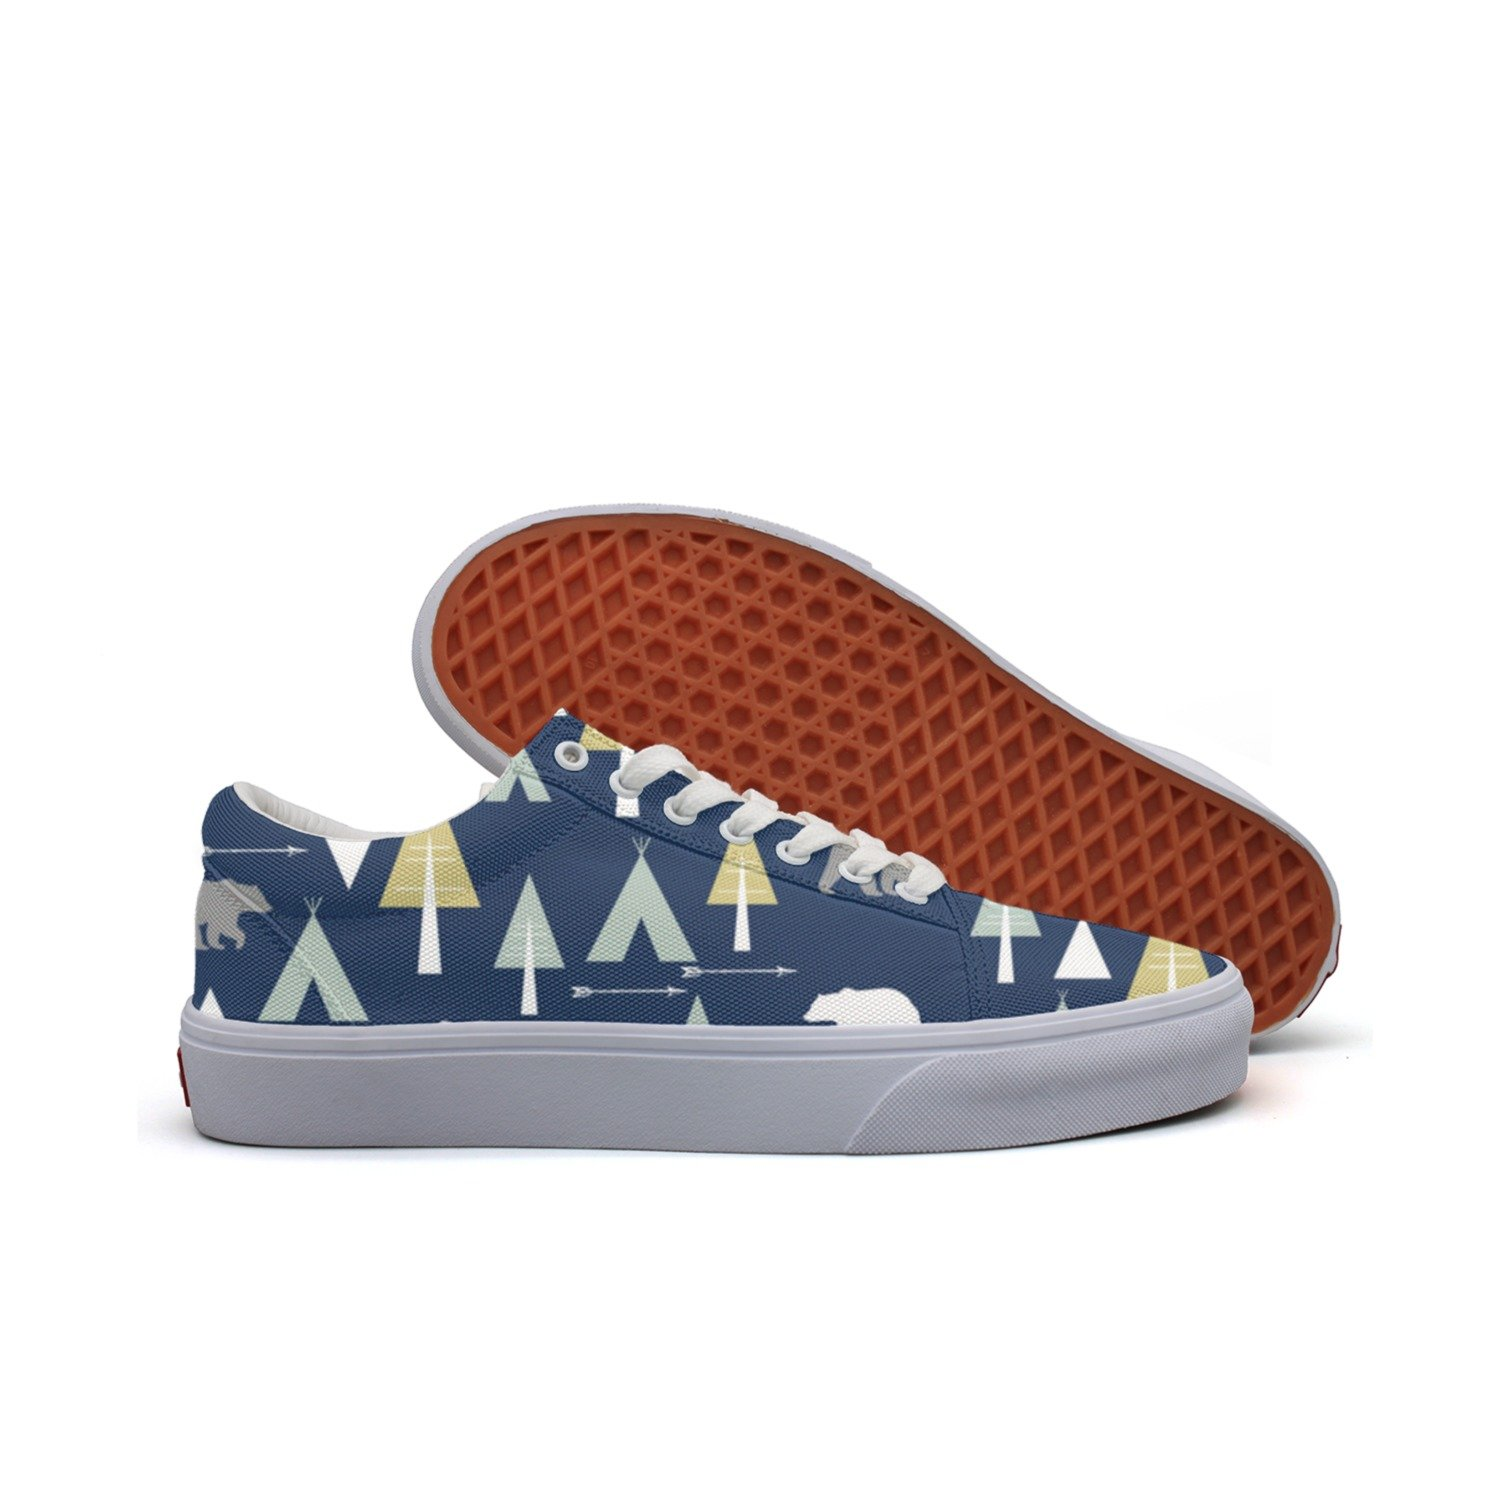 Bear Arrow Teepee Women's Casual Shoes Sneakers Boat Cool Print Original